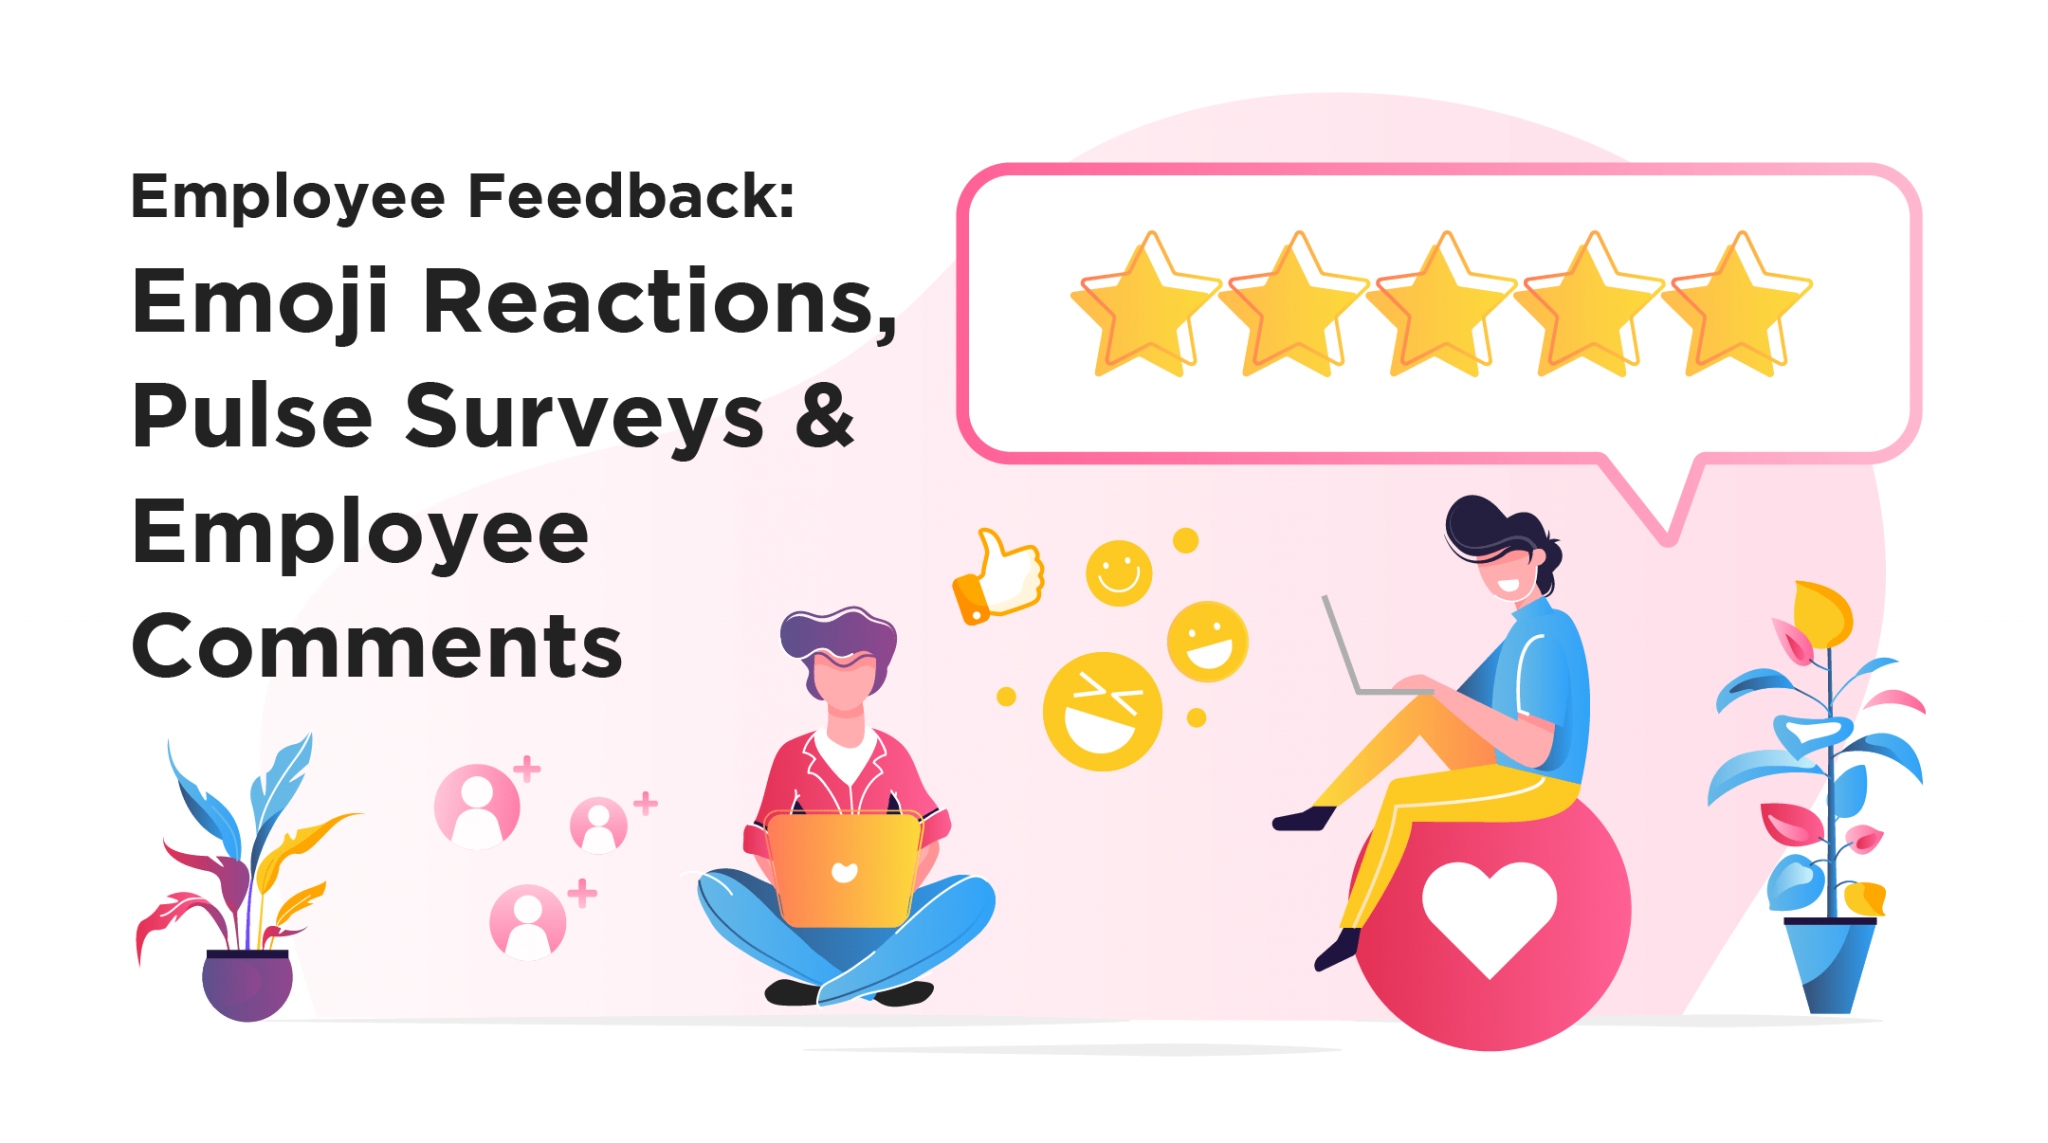 employee feedback emoji reactions pulse surveys employee comments featured image